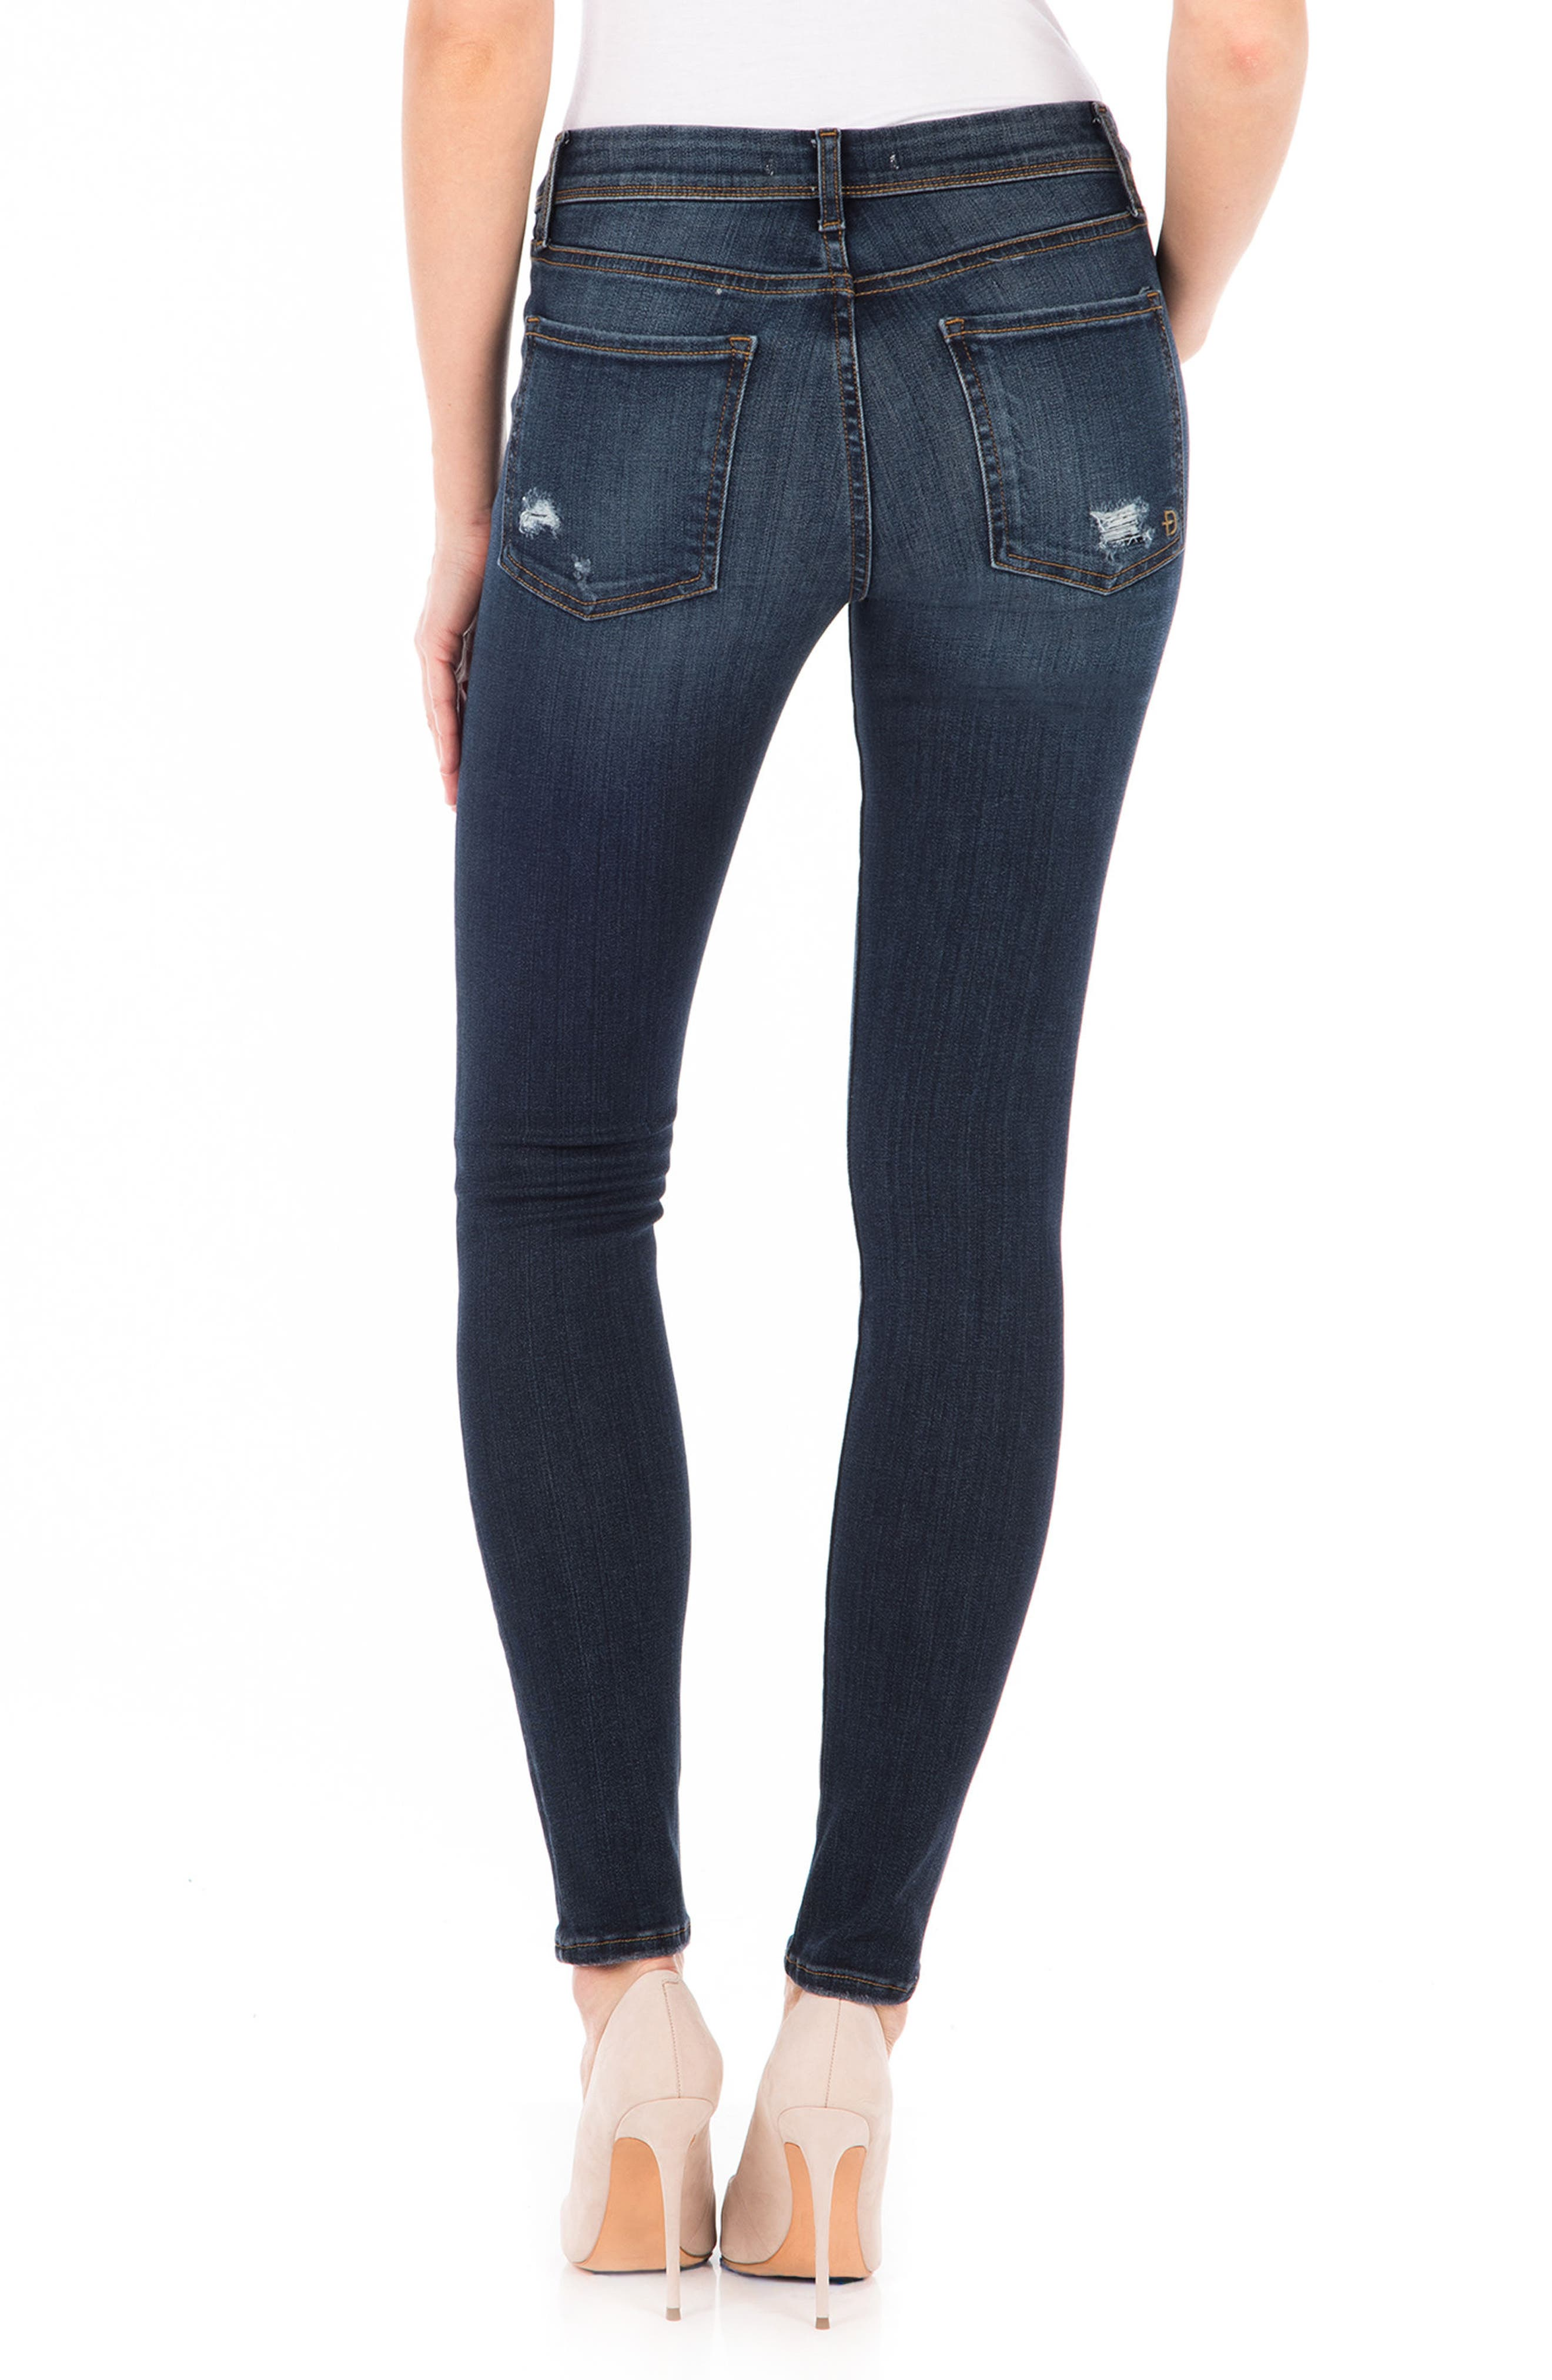 Belvedere Skinny Jeans,                             Alternate thumbnail 2, color,                             Refinery Blue